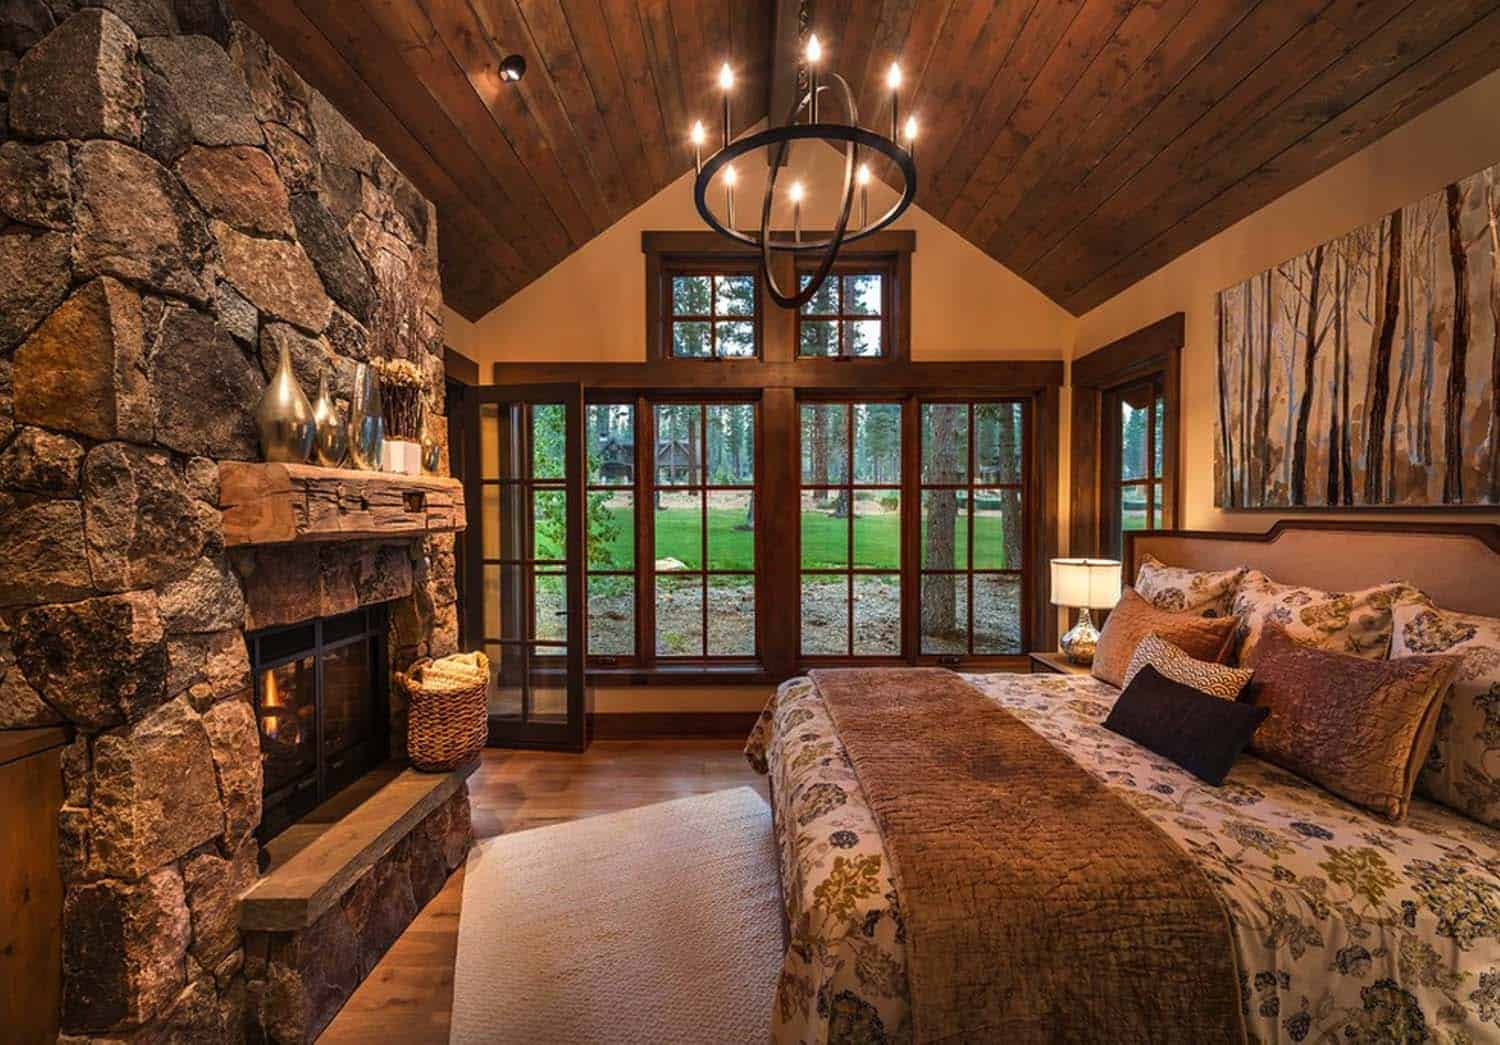 40 amazing rustic bedrooms styled to feel like a cozy getaway. Black Bedroom Furniture Sets. Home Design Ideas